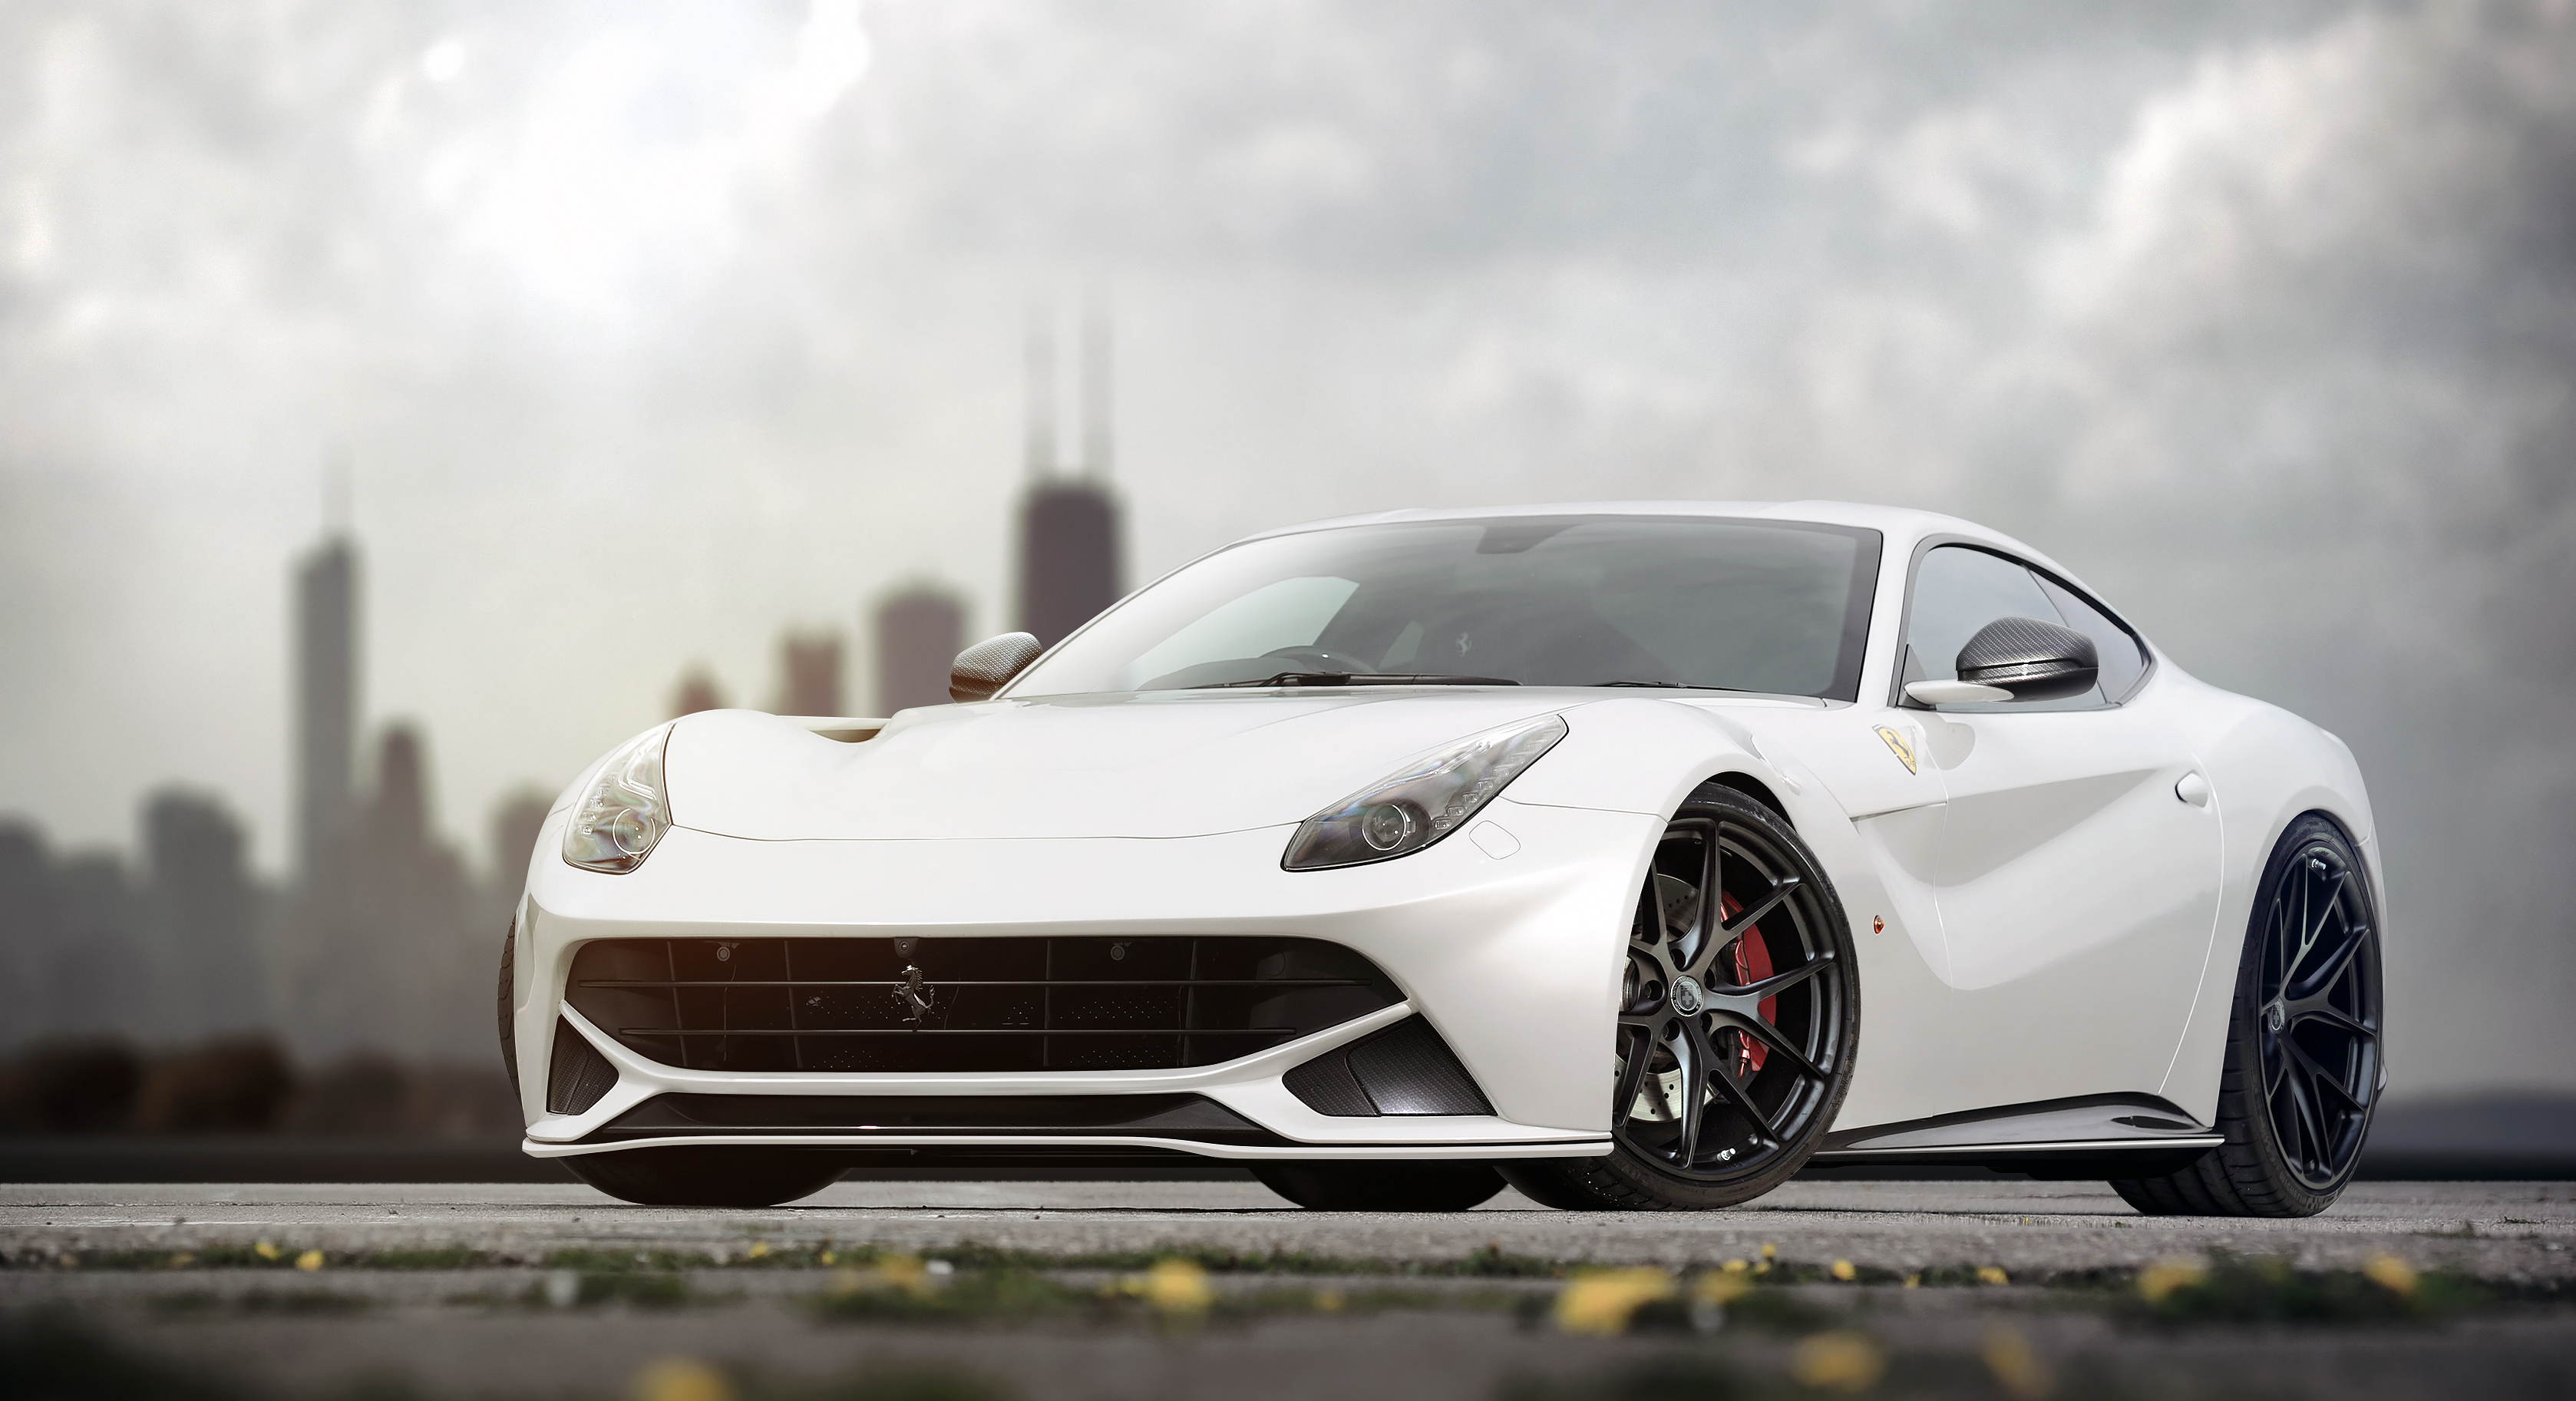 Ferrari F12berlinetta Wallpapers Posted By Michelle Thompson